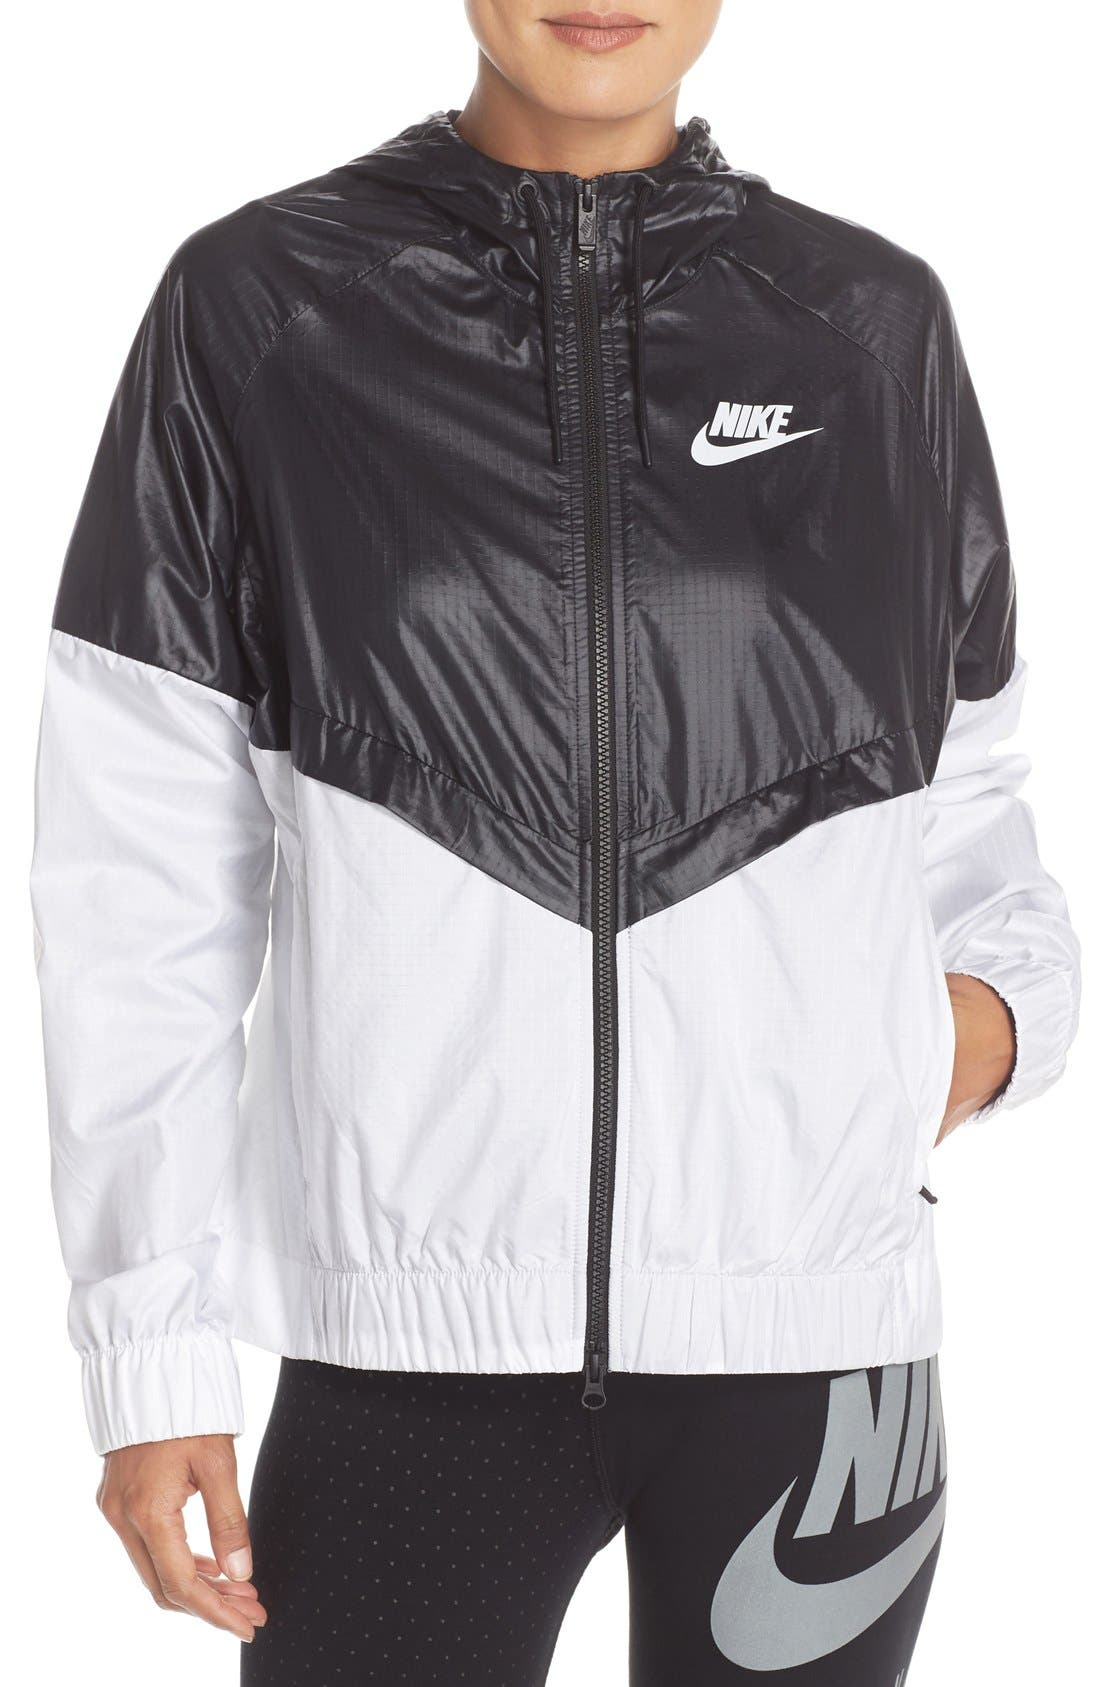 Nike 'Windrunner' Hooded Windbreaker Jacket